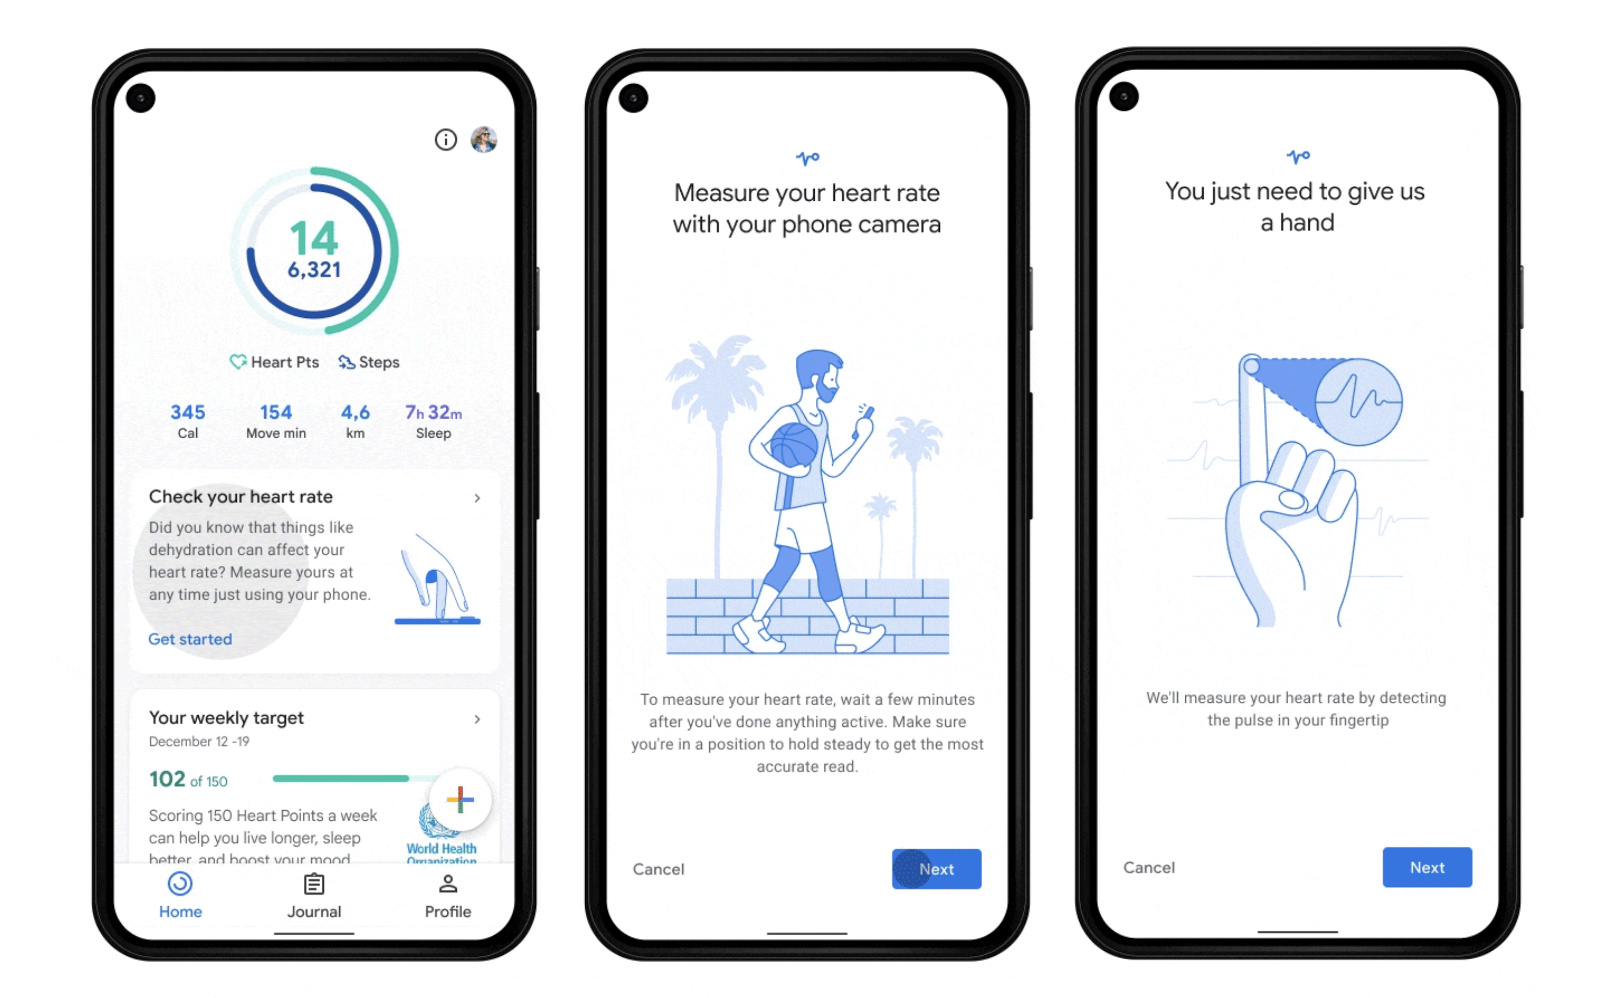 Google Fit heart and breathing rate trackers